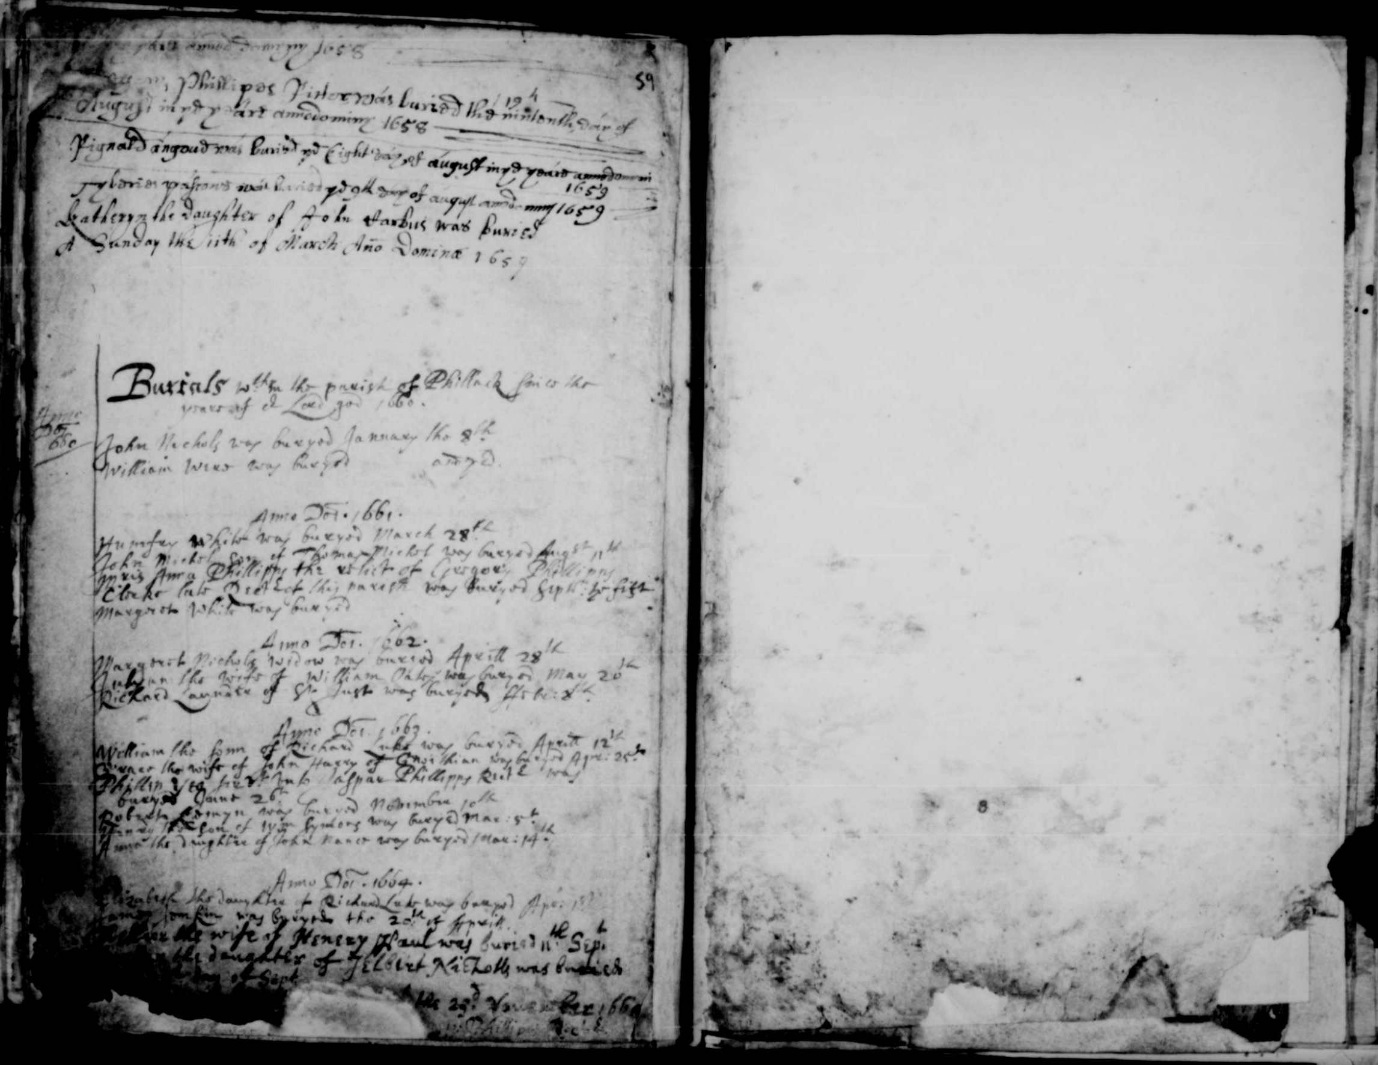 C:\Users\Virginia Rundle\Documents\Ancestry\Northey Moar Files\Tyack and Hockin Files\Burial of Grace Harry 25 April 1663 Phillack.jpg